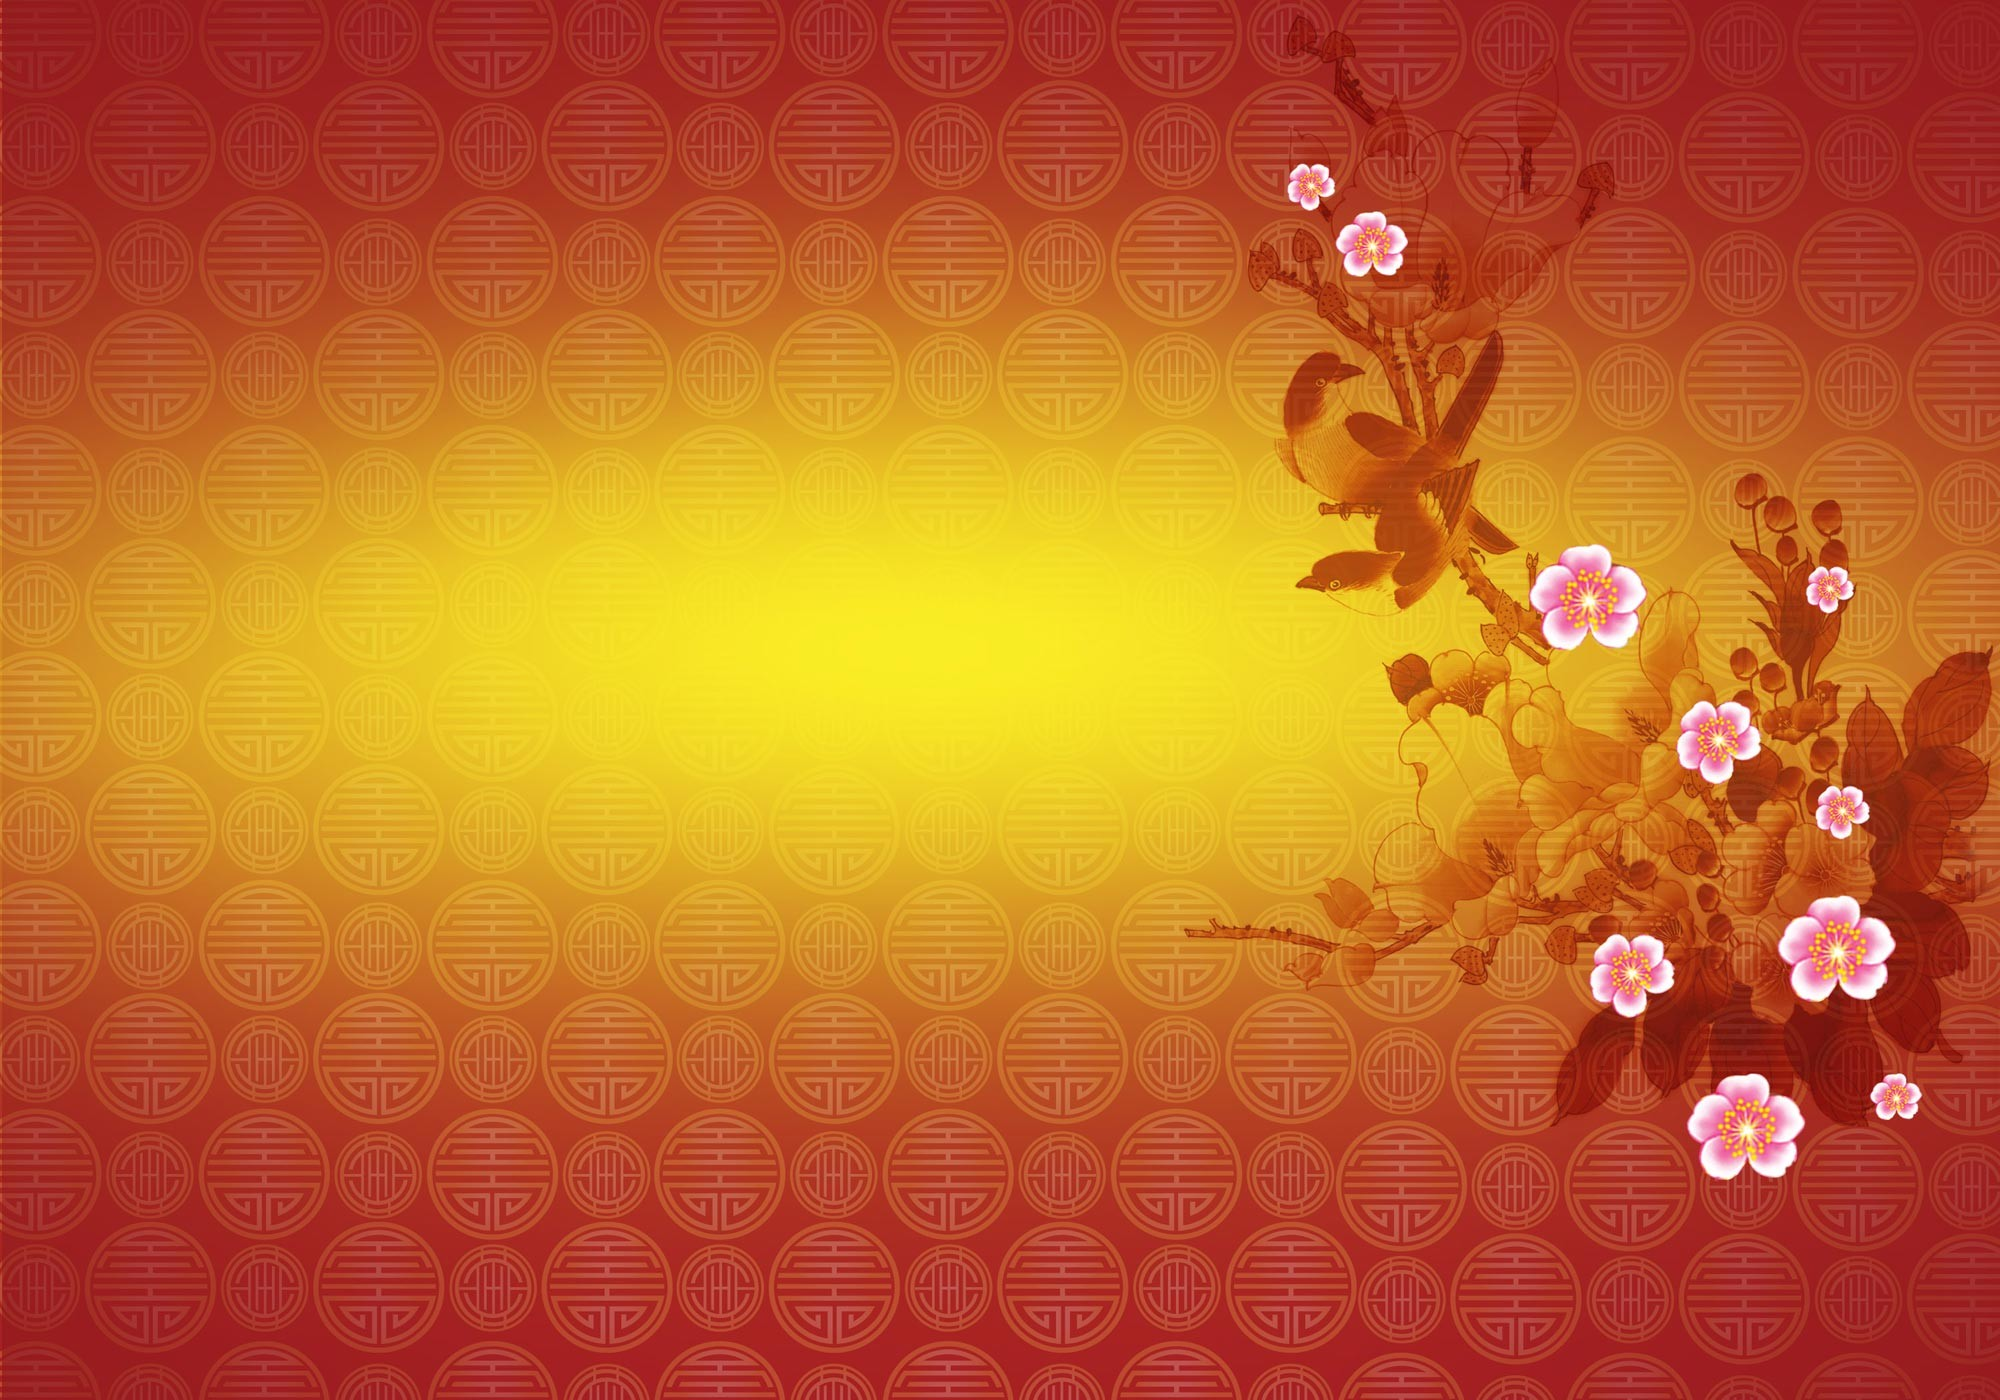 2000x1400 ... chinese new year 2017 background design with free psd file · chinese  wallpaper designs ...